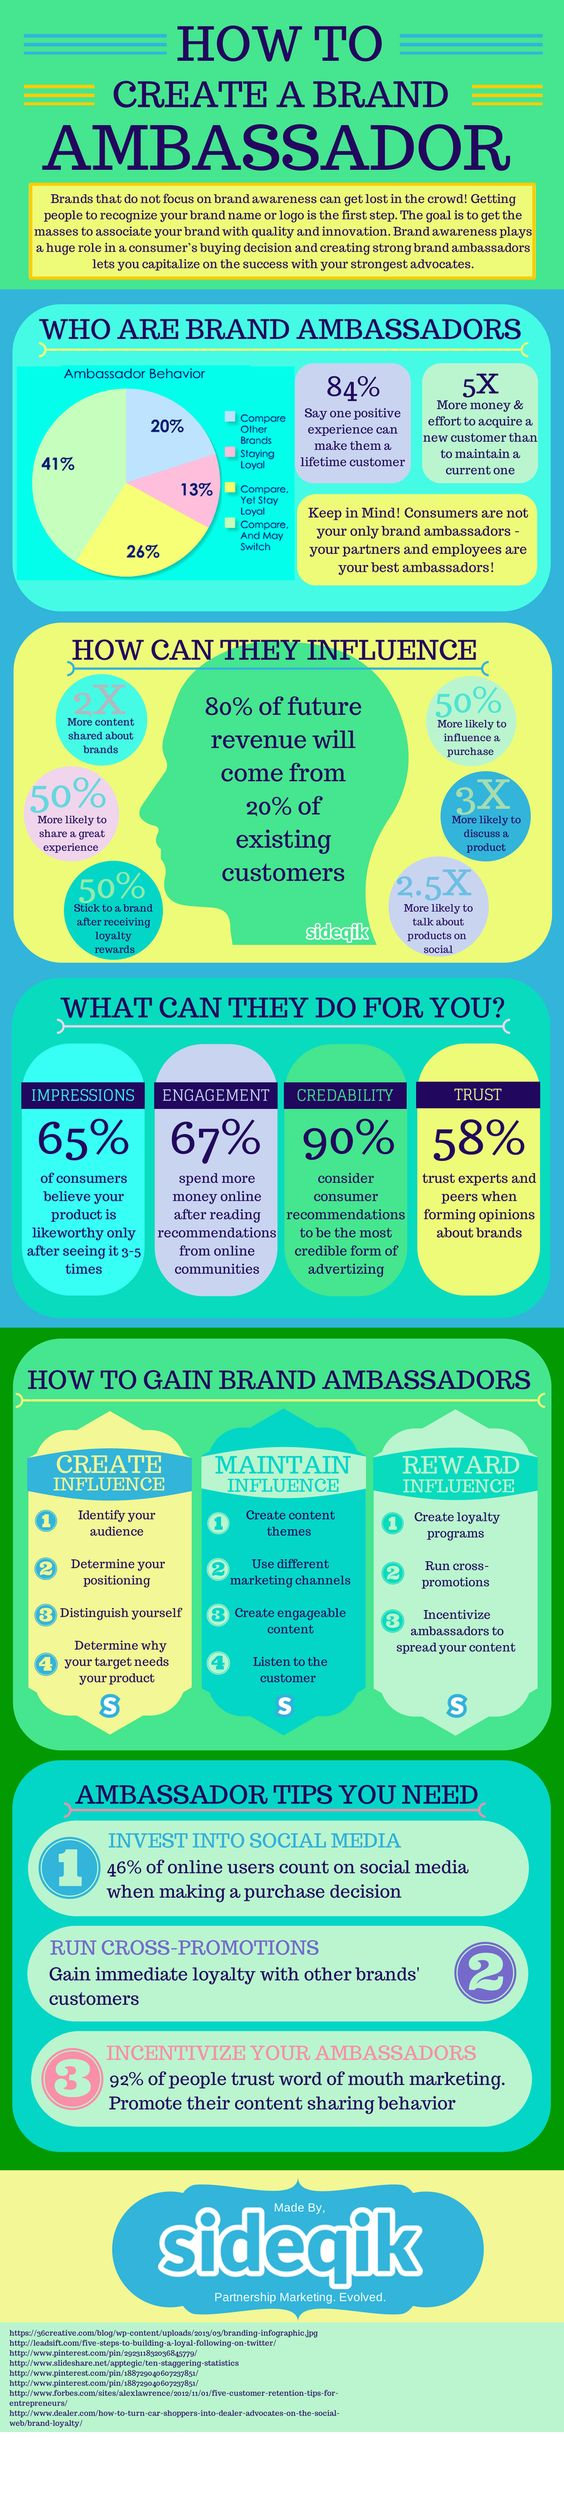 How Do You Gain Brand Ambassadors?  Well there are a couple of things that you can do. We recommend that you have a look at our infographic but for starters: create interest, maintain interest and reward interest. keep your customers happy and interested by rewarding their promotional behaviors.